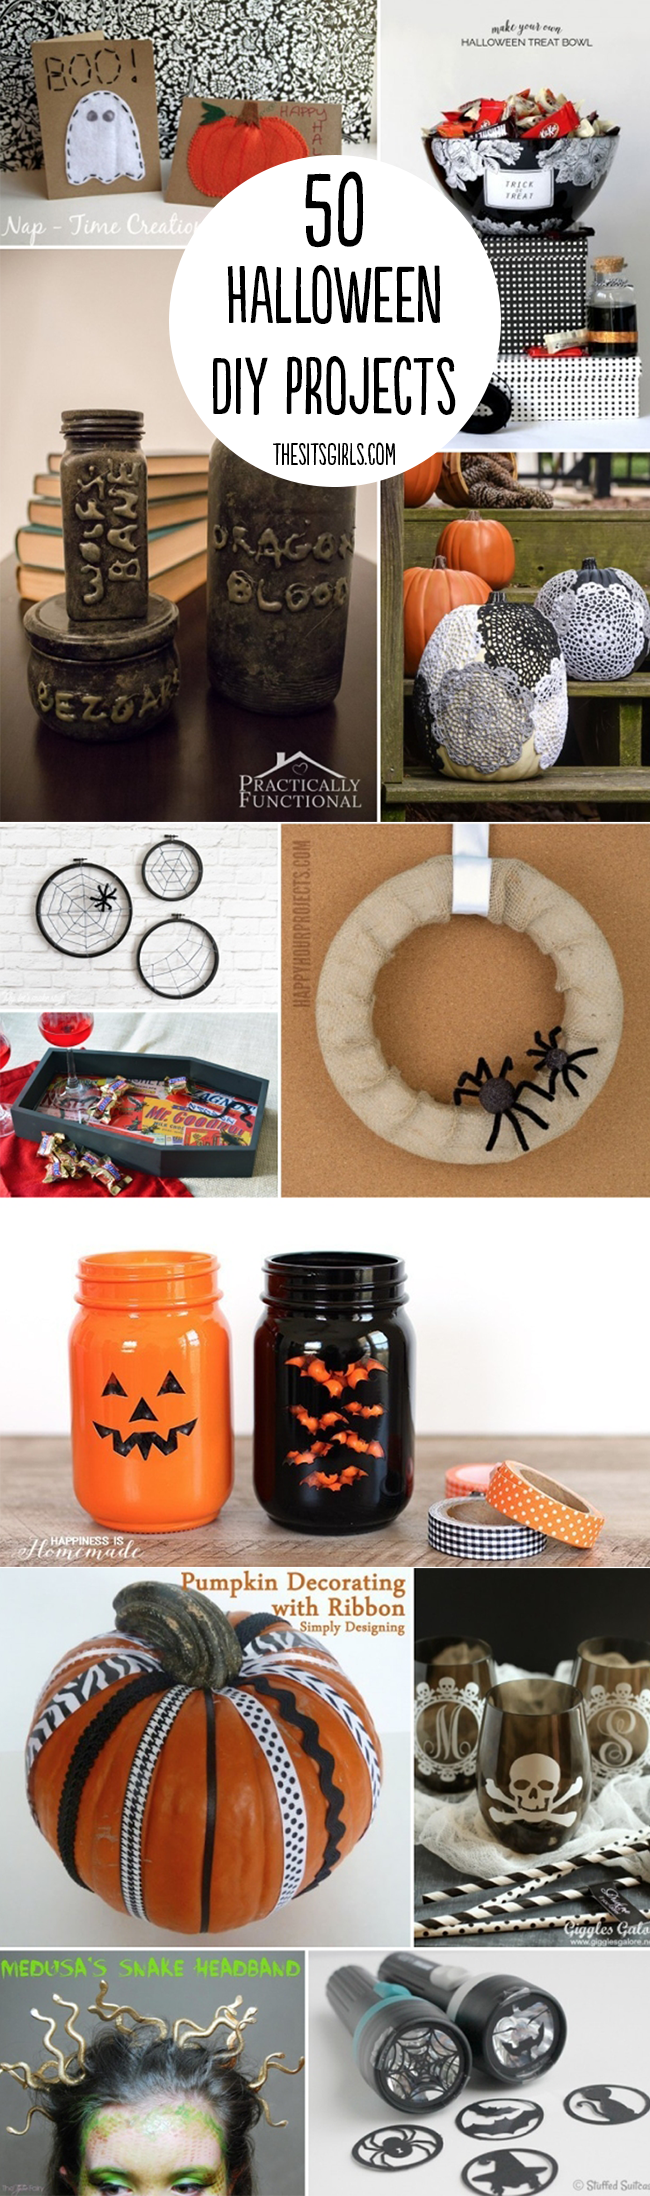 Halloween DIY | 50 great DIY projects you can do for Halloween, from decorations to costumes.